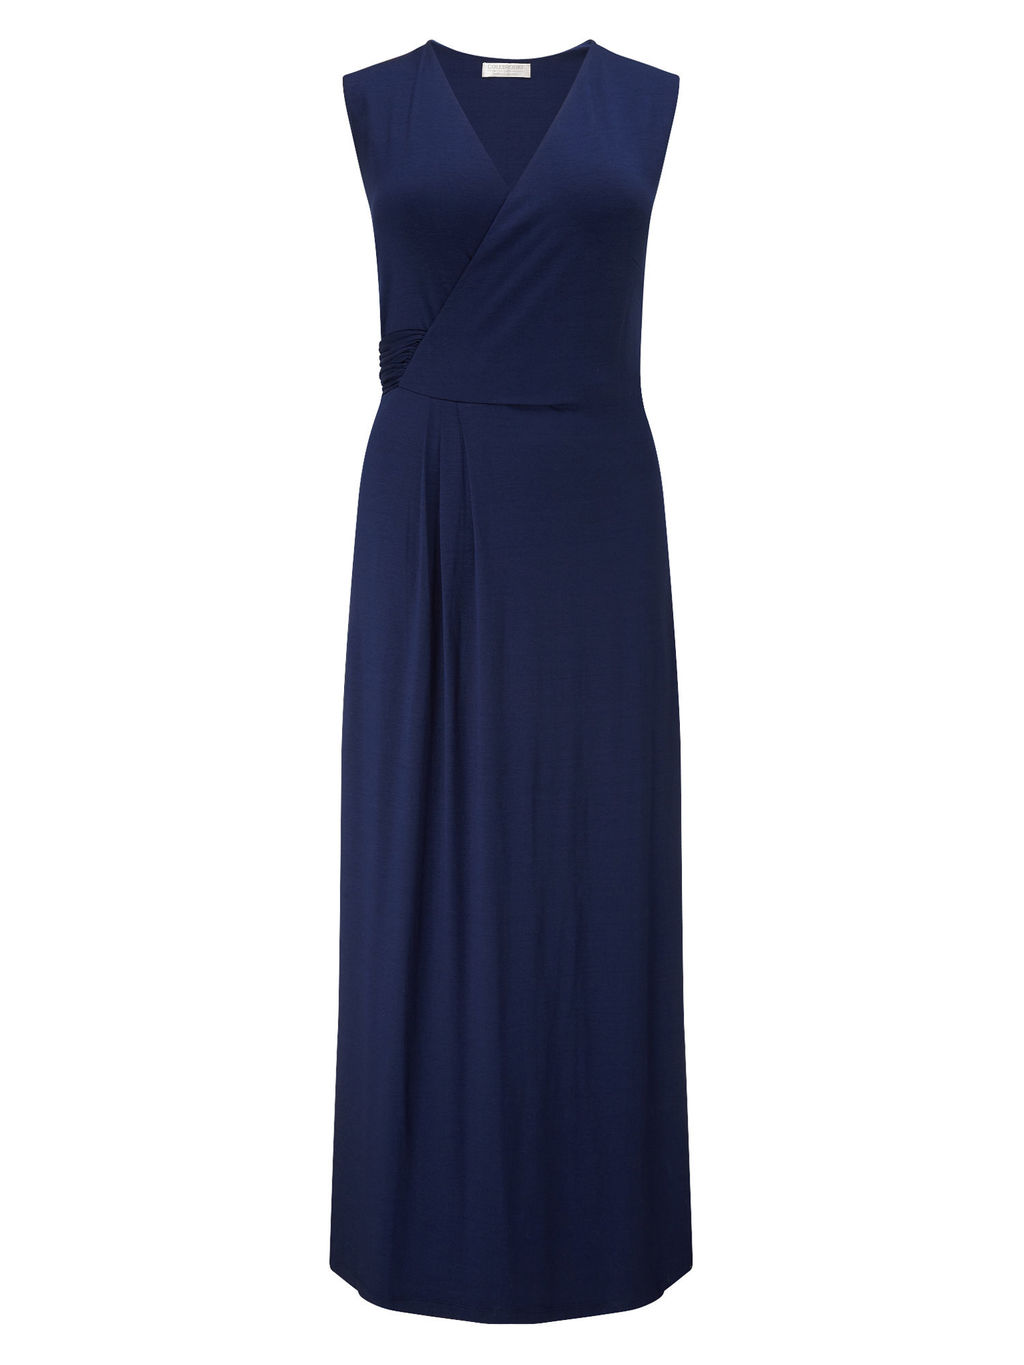 Navy Waist Detail Maxi Dress - neckline: low v-neck; pattern: plain; sleeve style: sleeveless; style: maxi dress; length: ankle length; predominant colour: navy; occasions: casual, evening, holiday; fit: body skimming; fibres: viscose/rayon - stretch; sleeve length: sleeveless; pattern type: fabric; texture group: jersey - stretchy/drapey; season: s/s 2016; wardrobe: basic